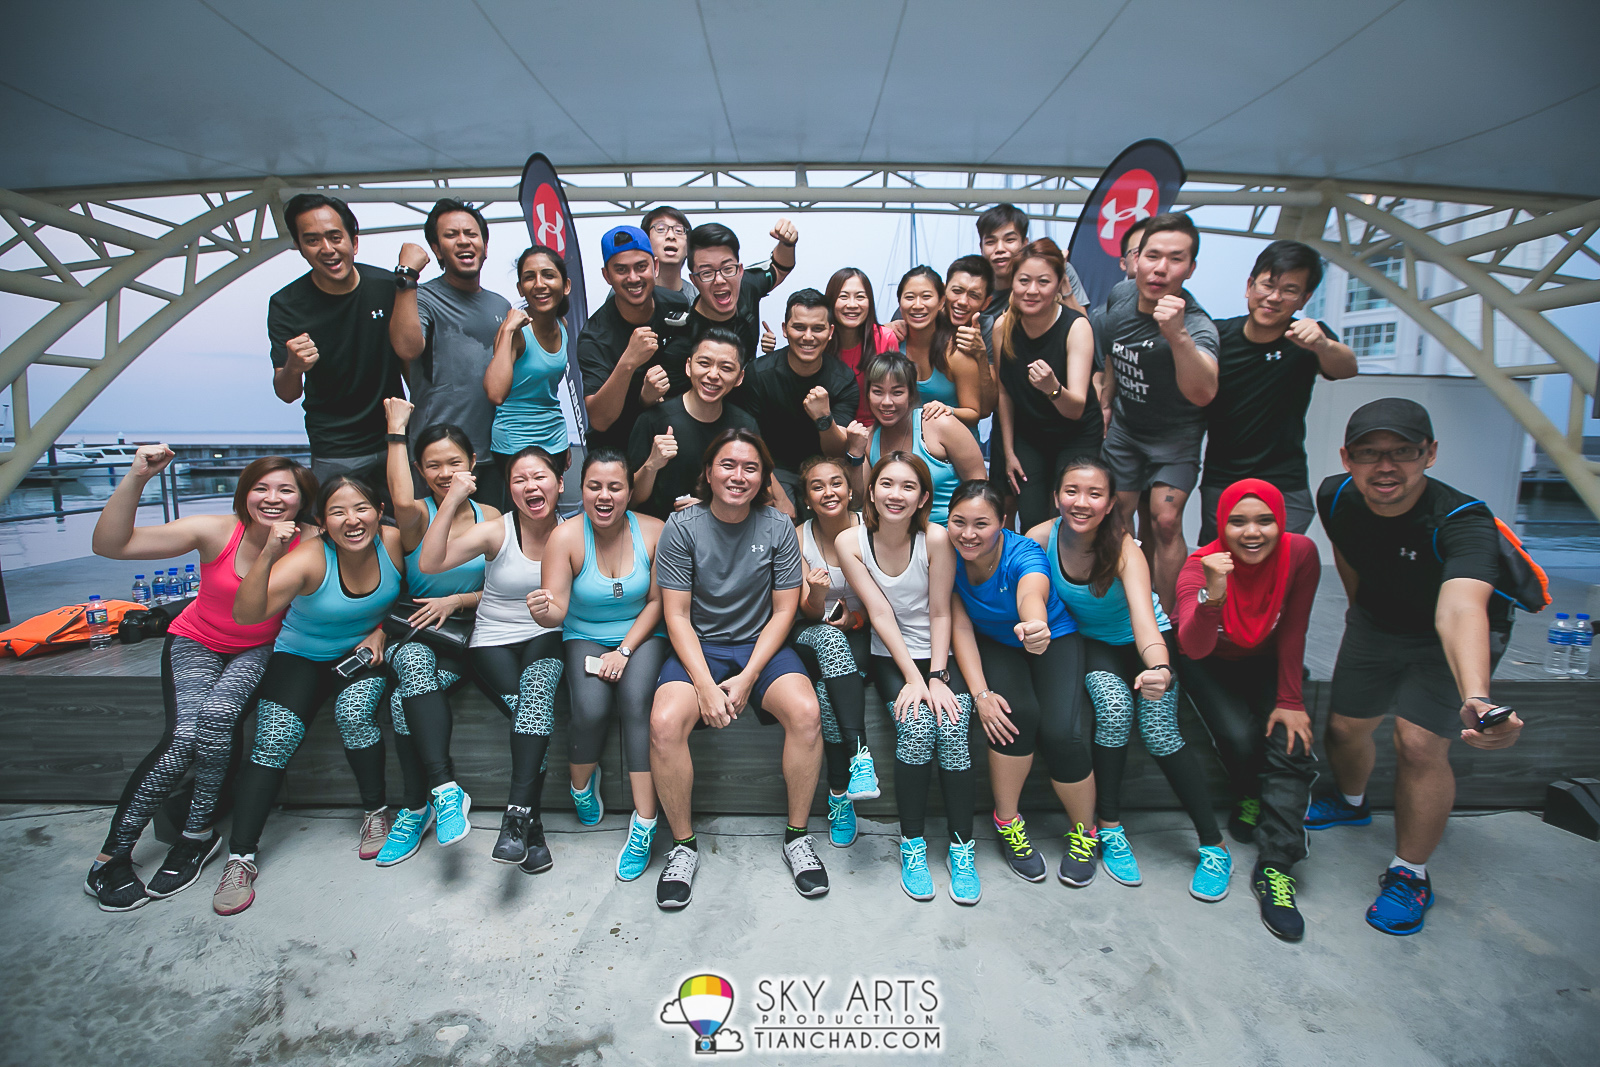 Roller skate shoes penang - Group Photo With Under Armour Athletes Of The Day After A Great Workout